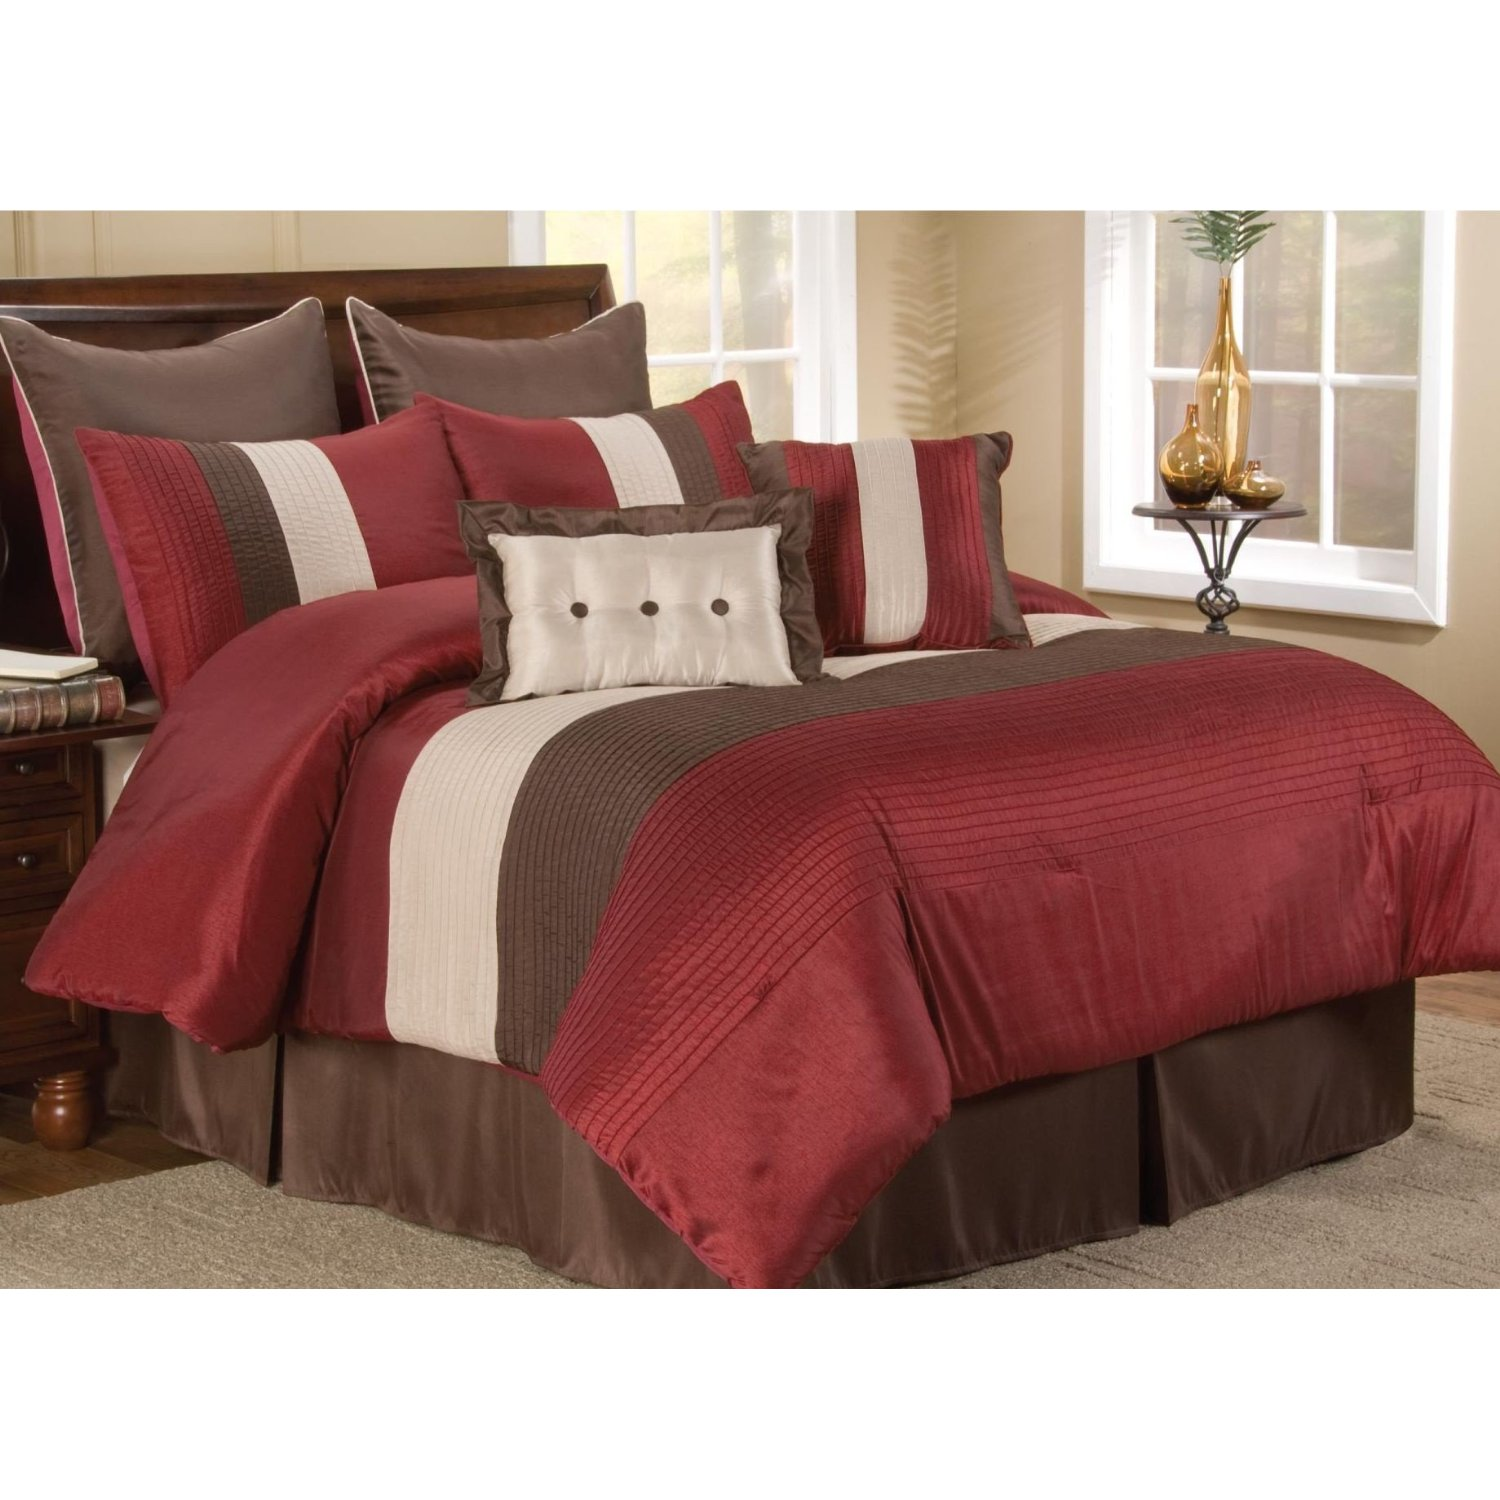 Burgundy And Gray Bedroom Red Bedding Set A Thrifty Mom Recipes Crafts Diy And